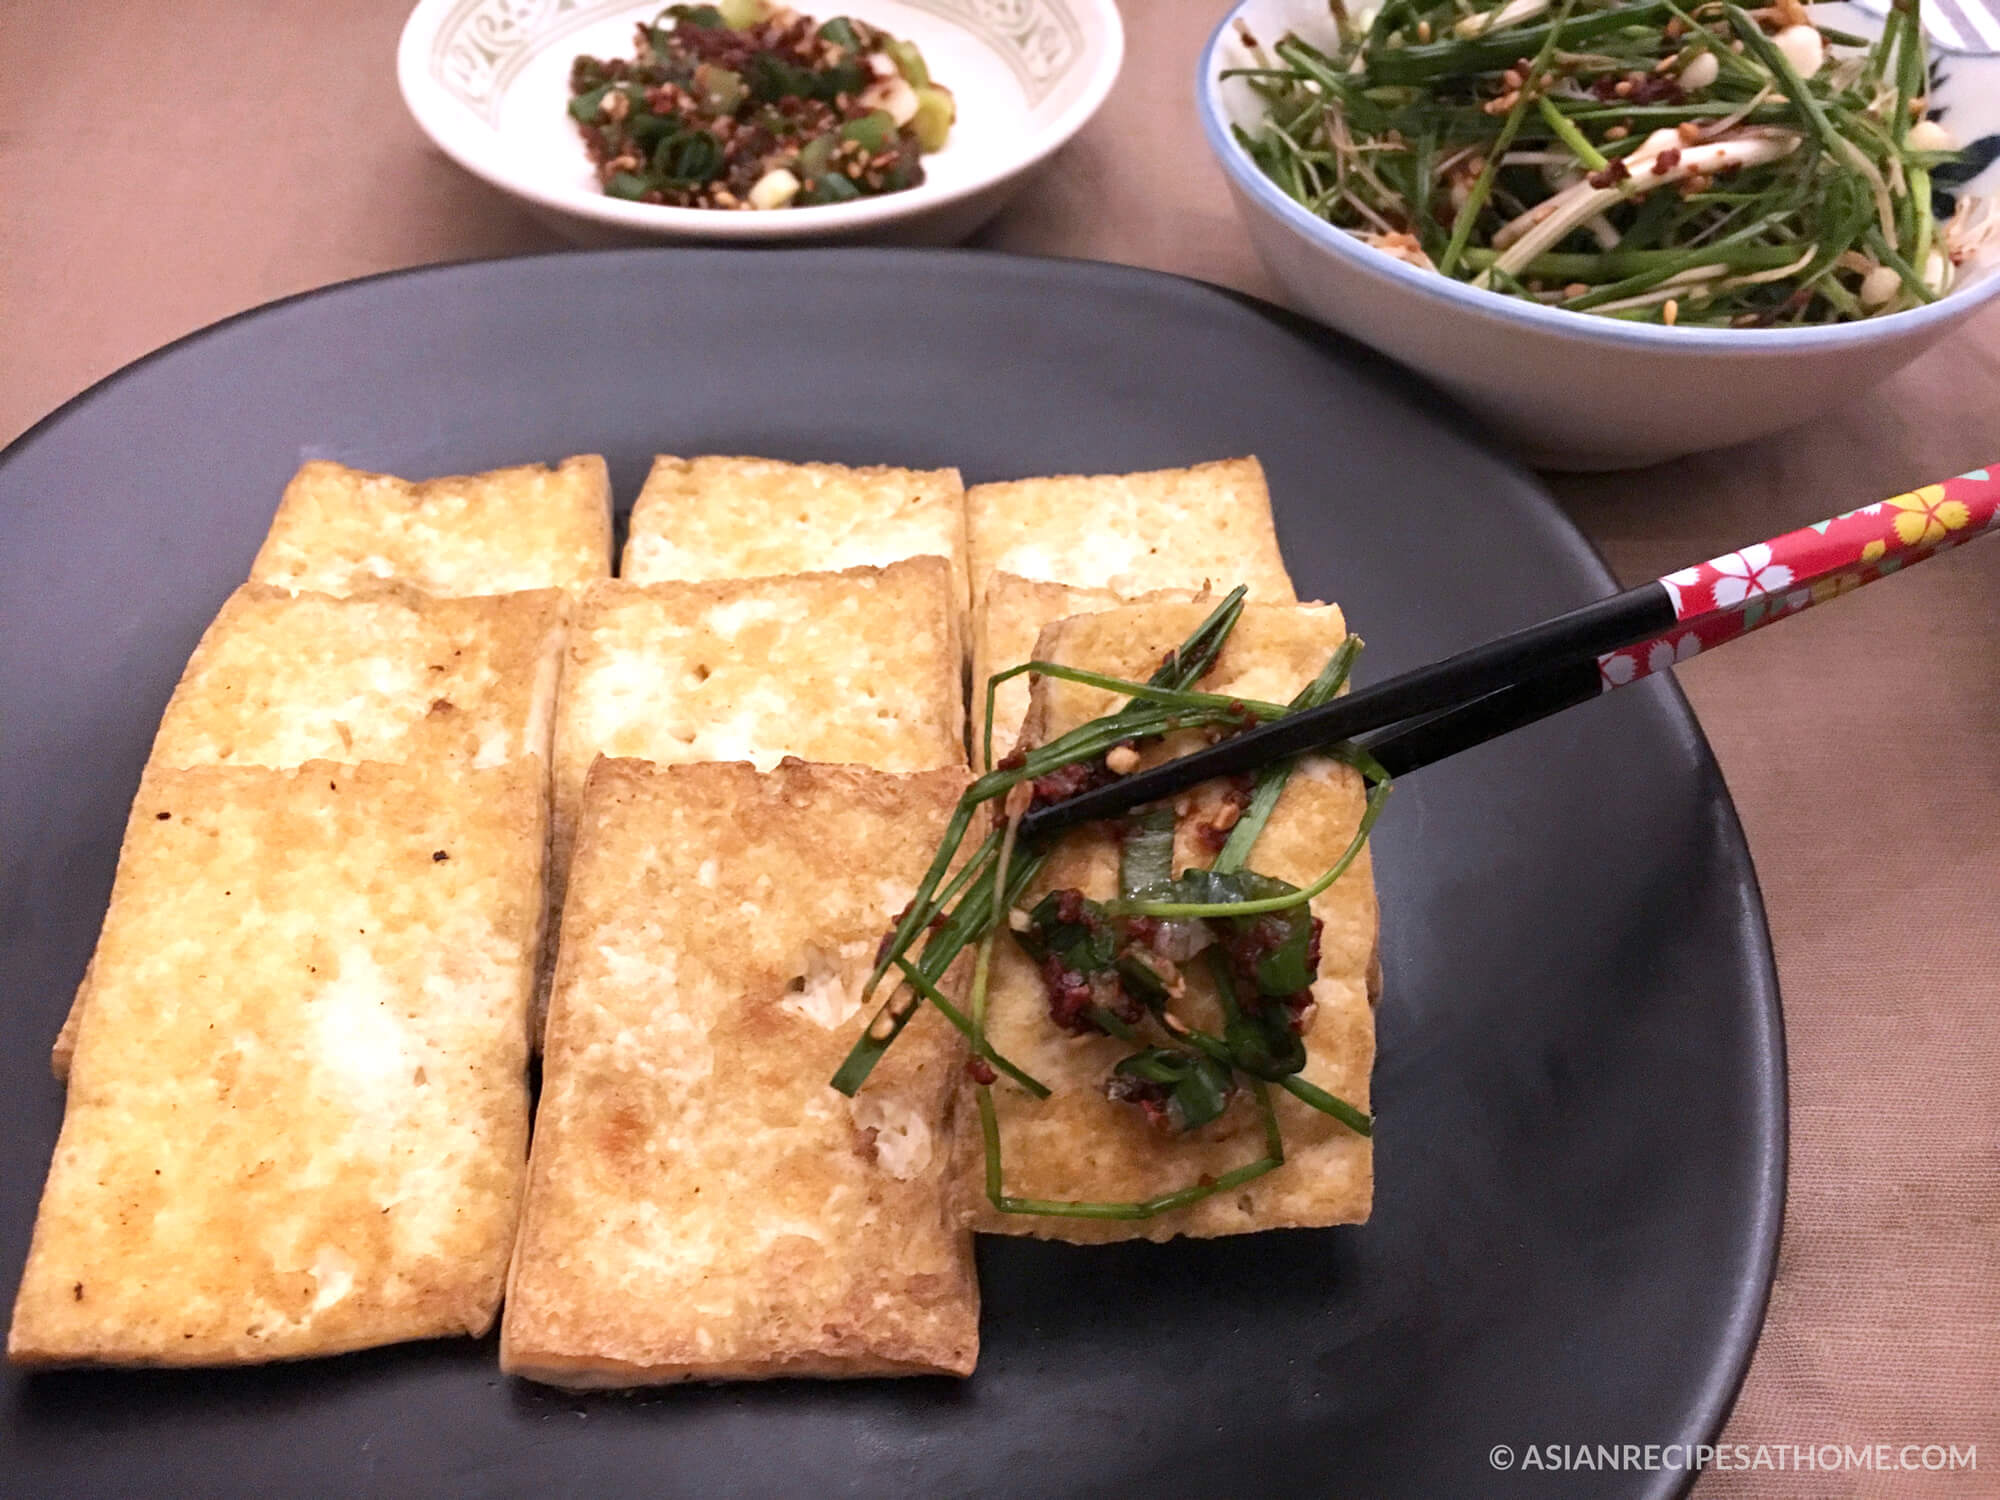 This pan-fried tofu is easy to make, healthy, and full of flavor thanks to our simple dipping sauce.